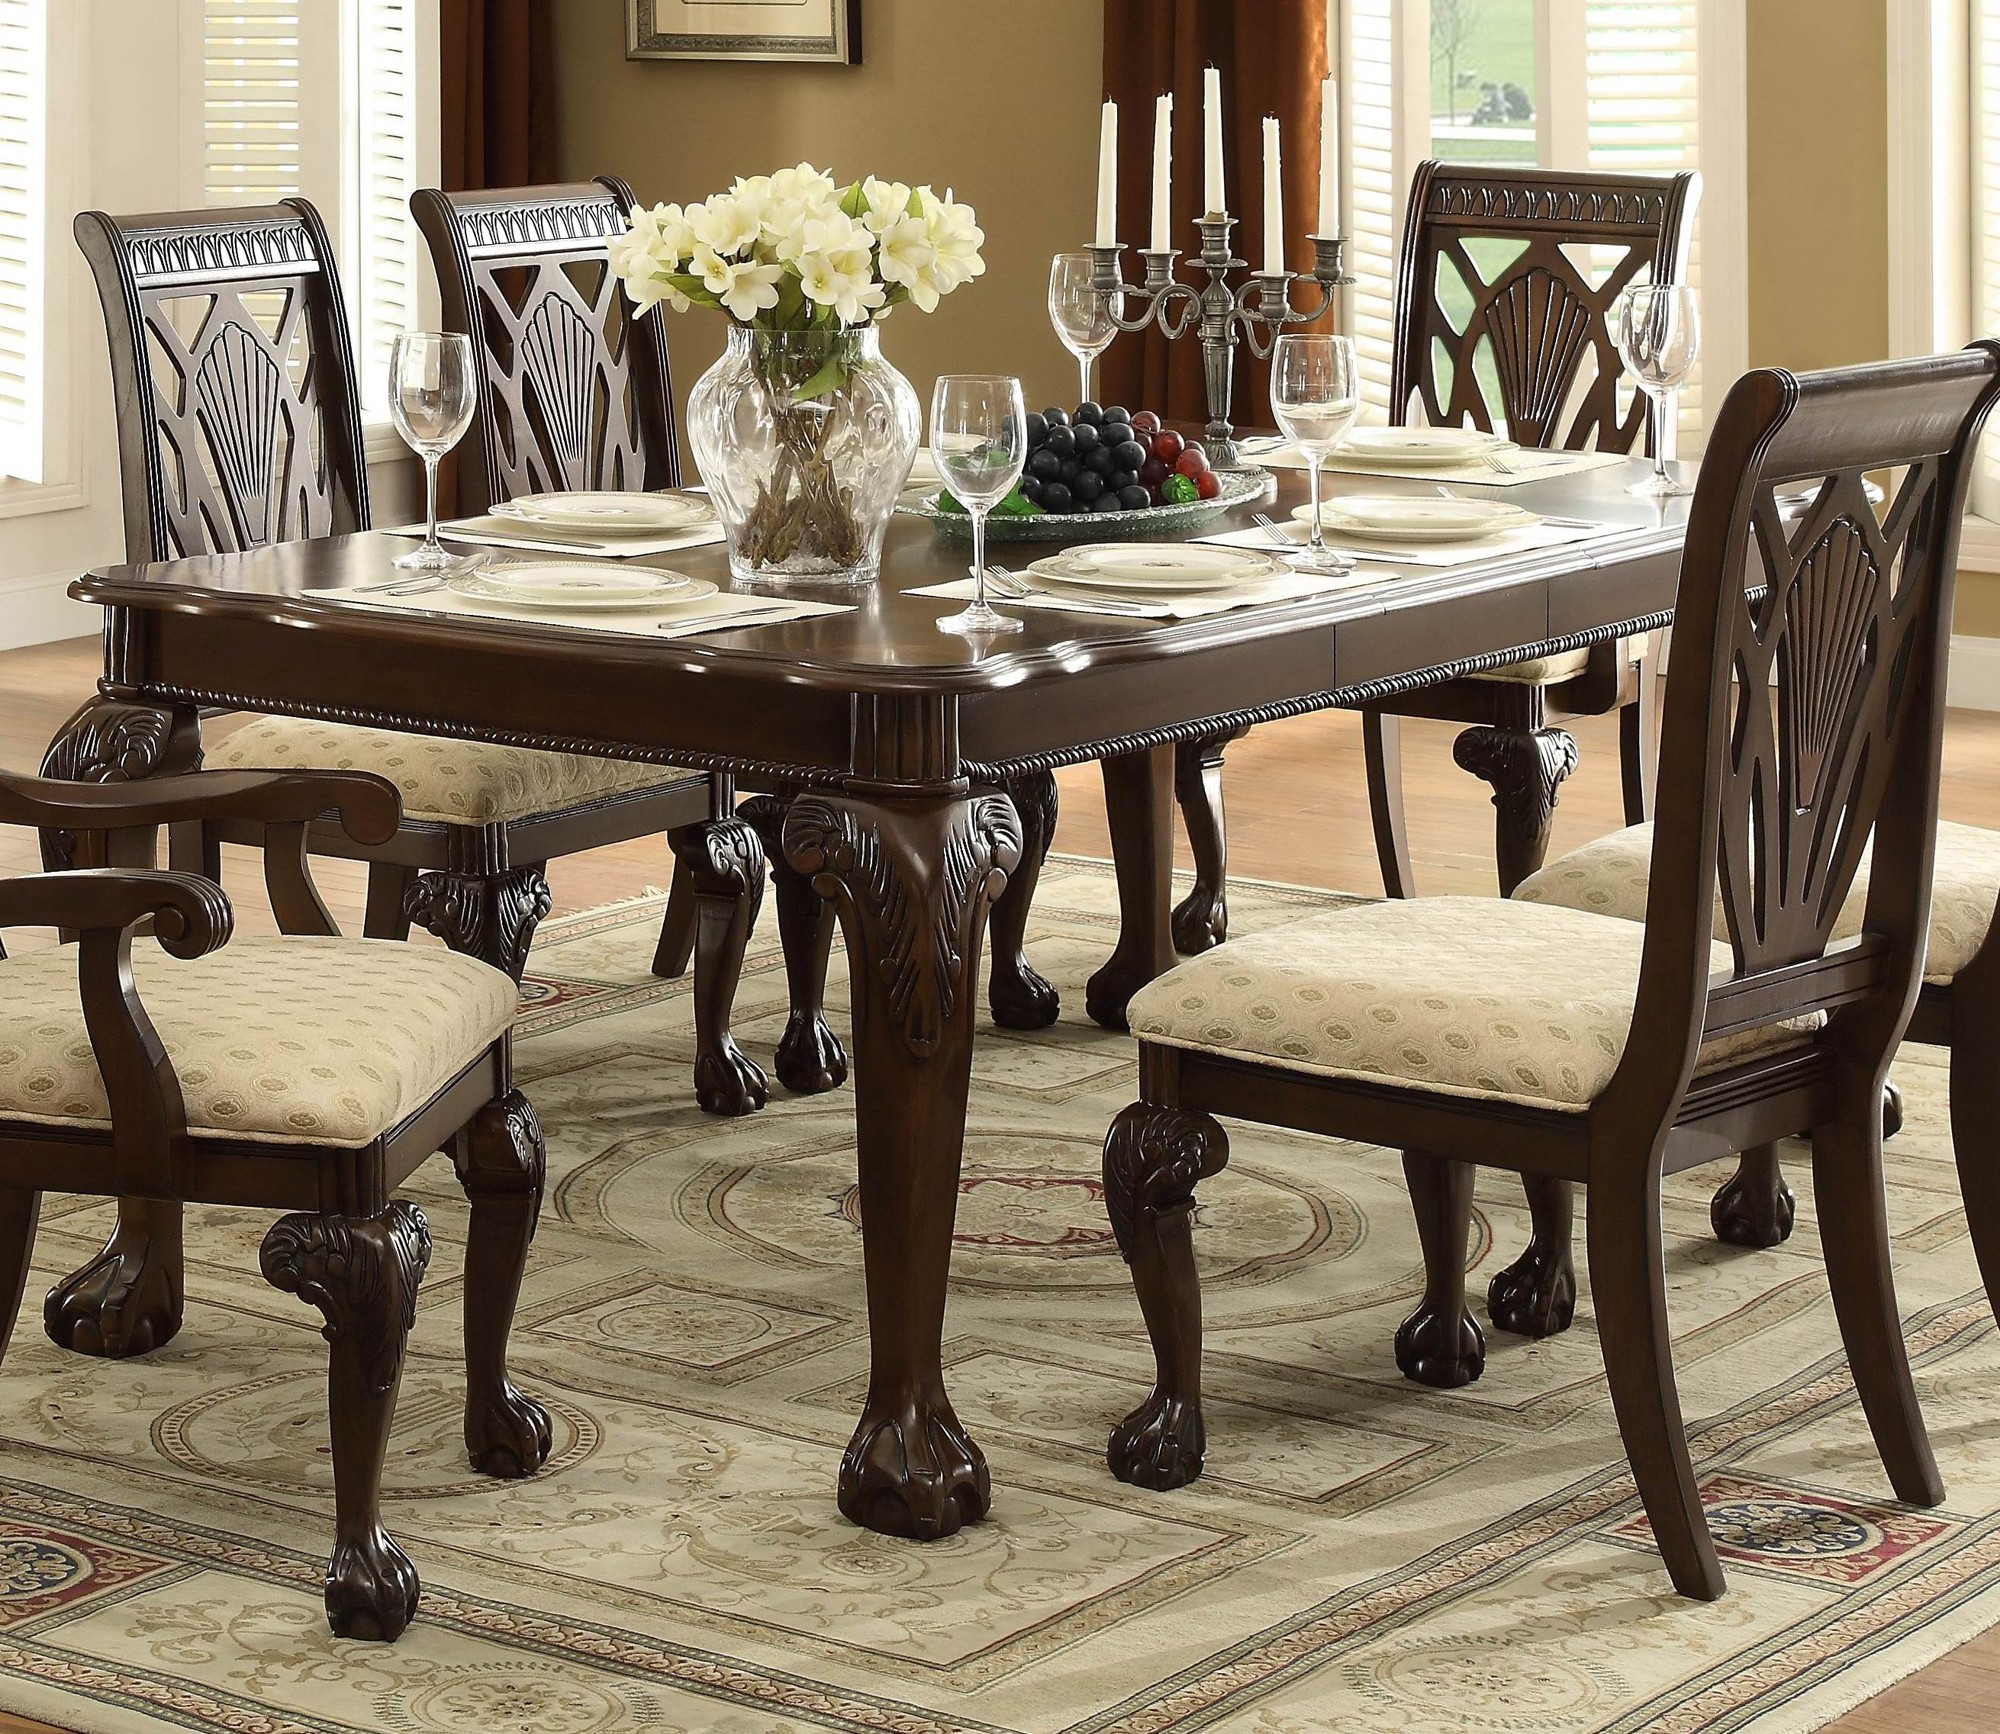 Cool Norwich Warm Cherry Dining Table For $539.94 - Furnitureusa for The Dining Rooms Norwich